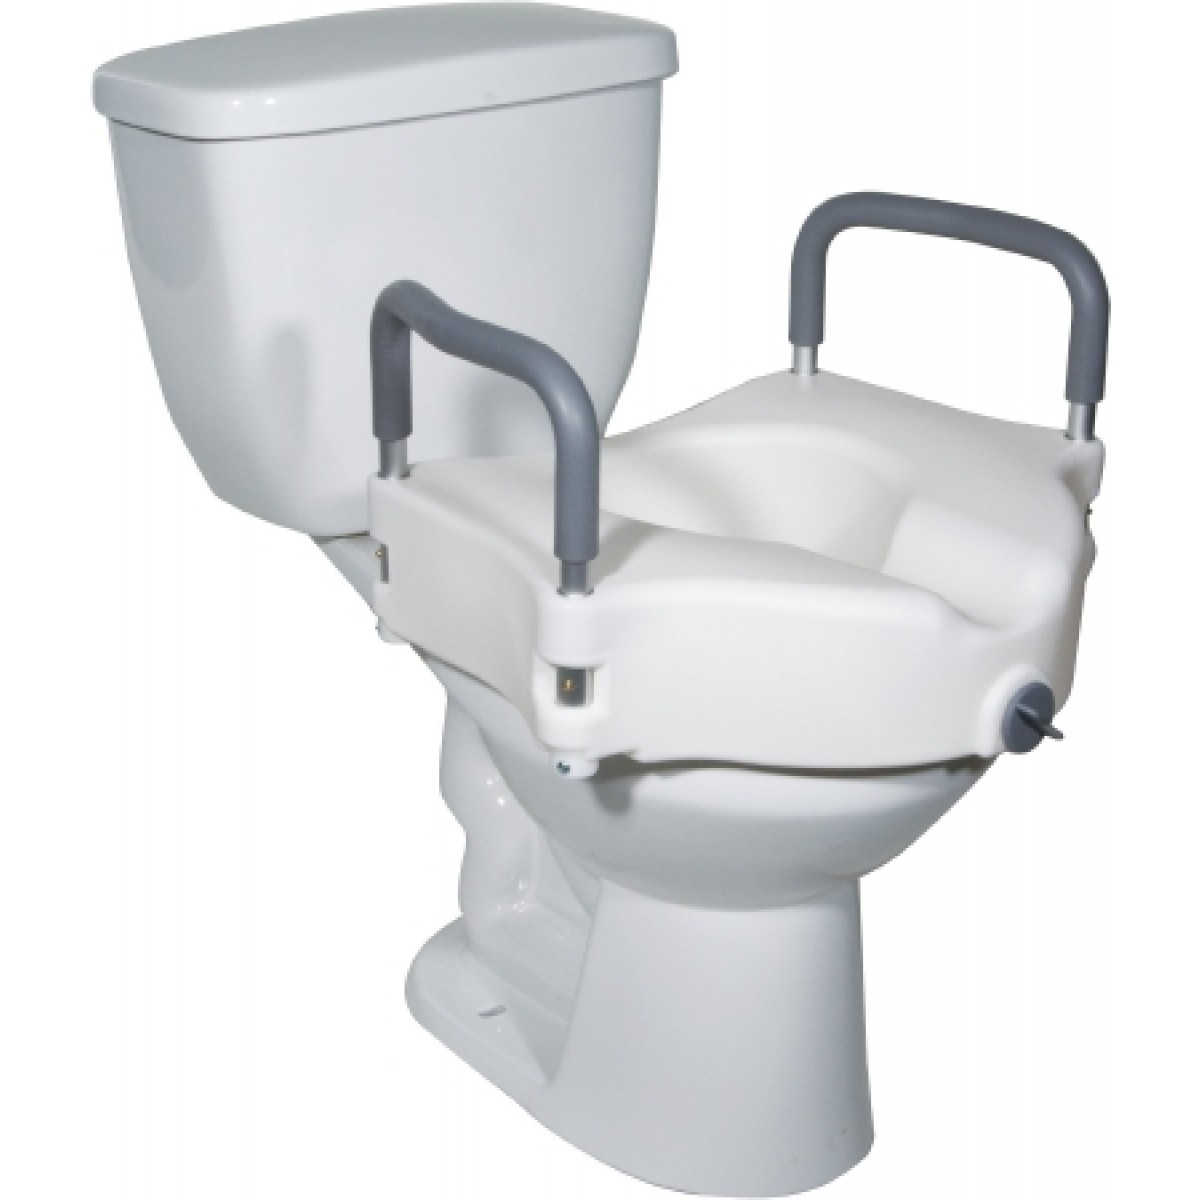 Raised Toilet Seat With Arms 5 Inch 12027ra 4bulk